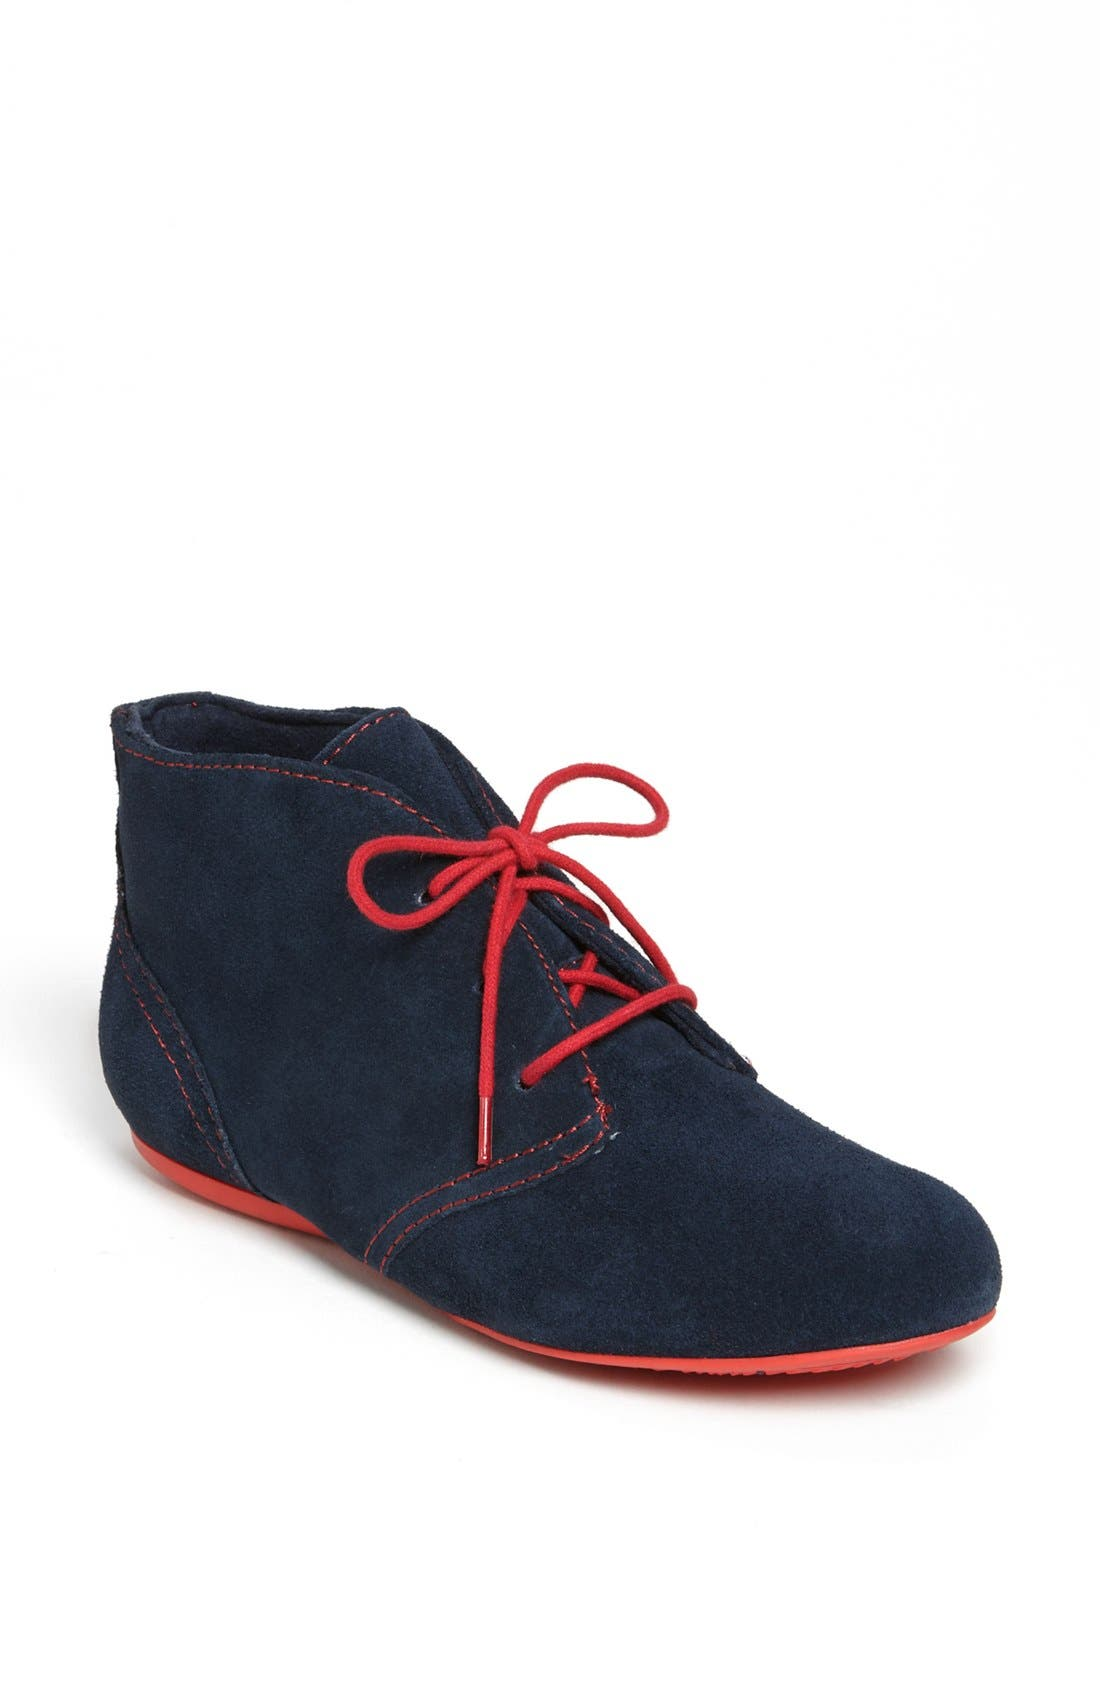 Alternate Image 1 Selected - SoftWalk® 'Nicky' Chukka Boot